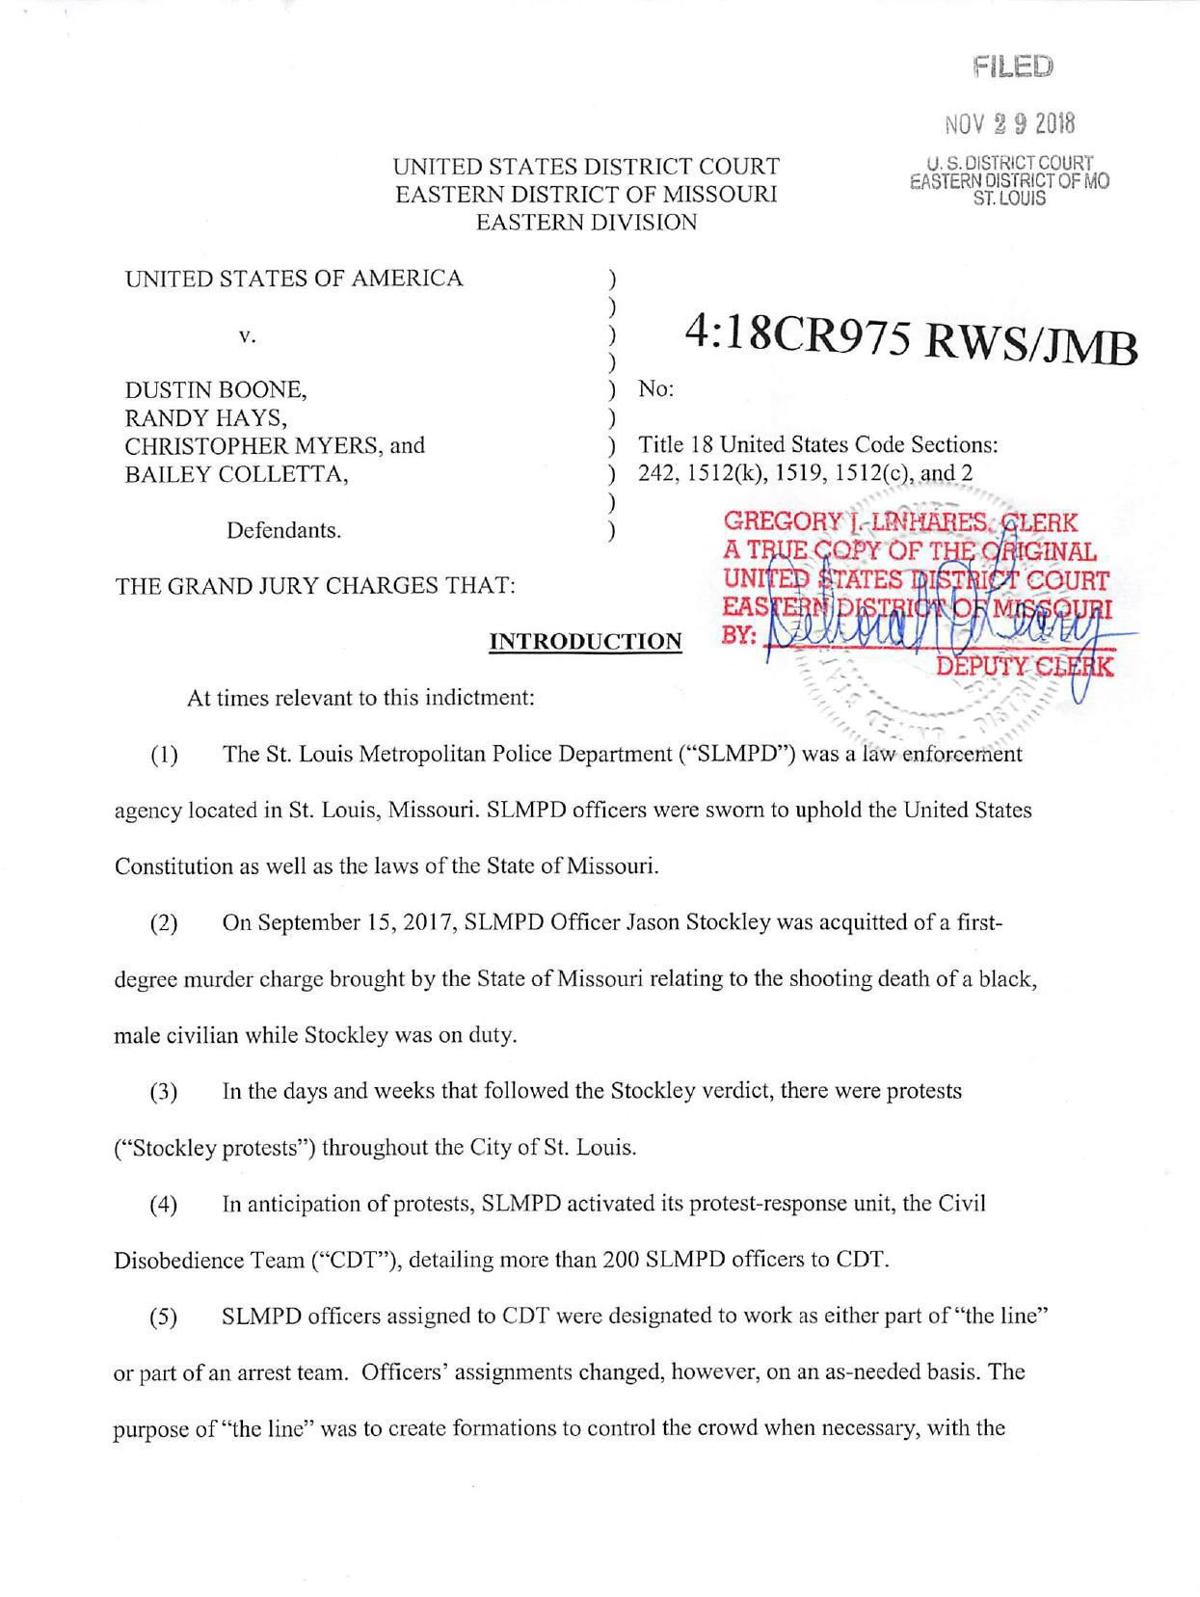 Civil Rights Indictment of SLMPD Officers